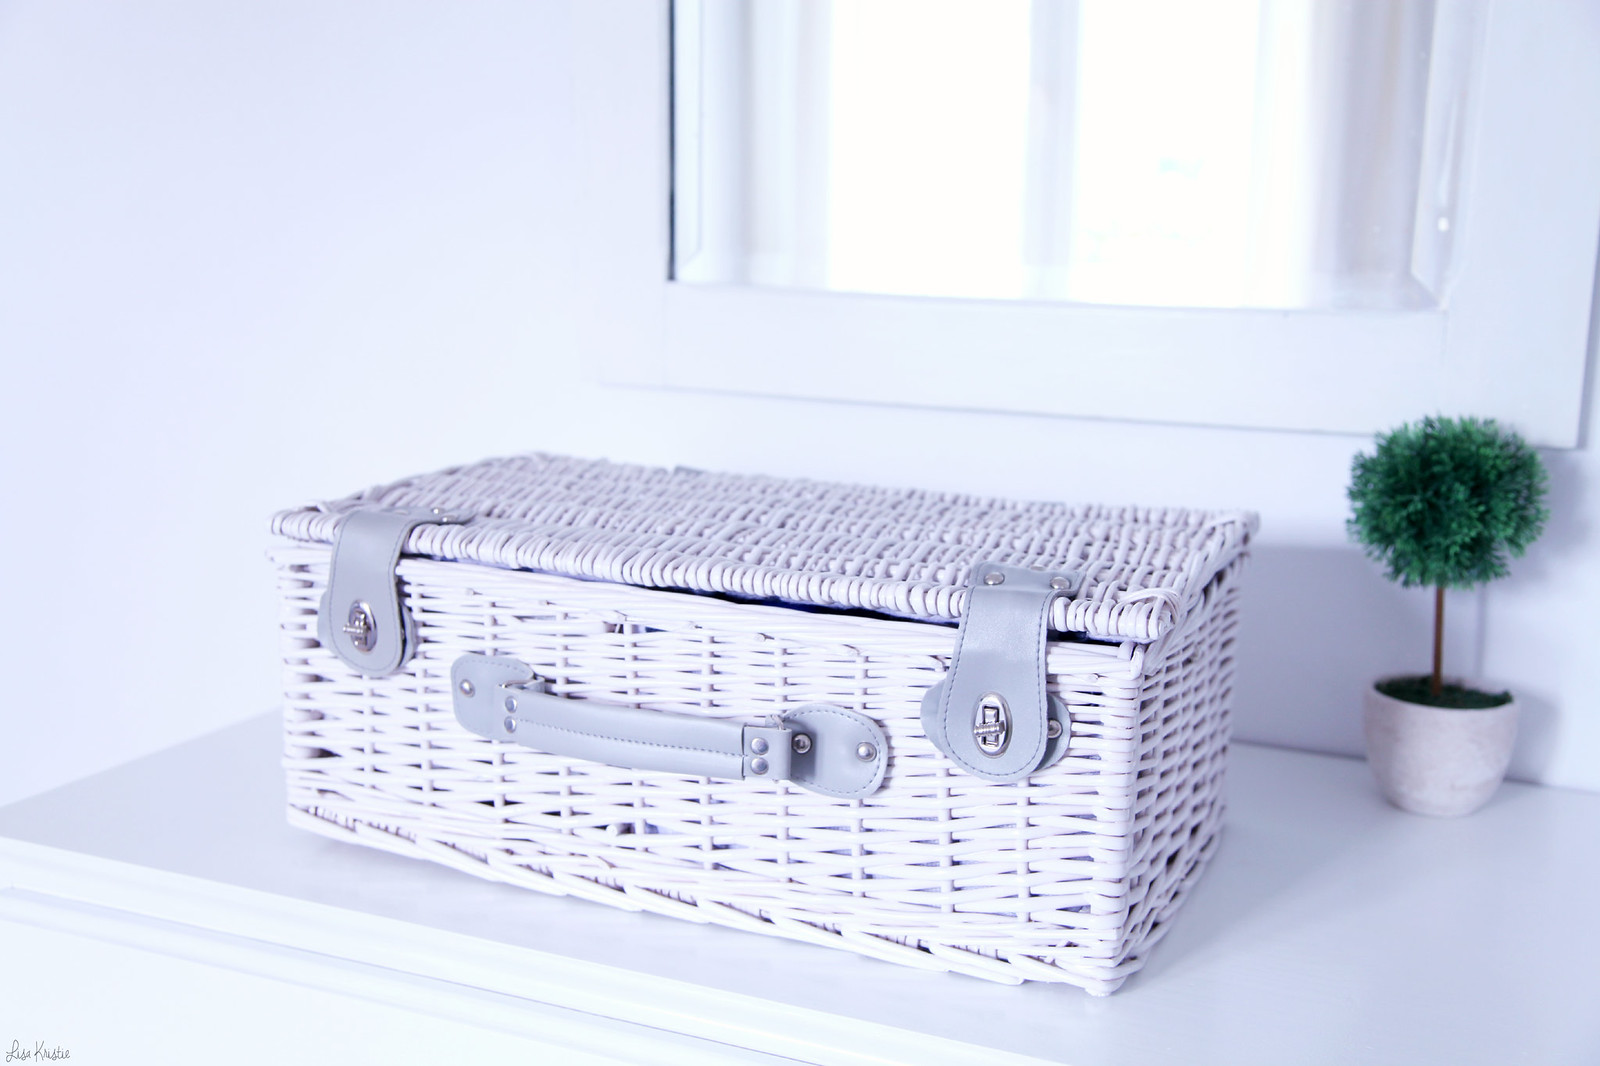 dog picnic basket travel luggage suitcase pet reed wicker woven white pale grey leather beautiful well made details shabby chic